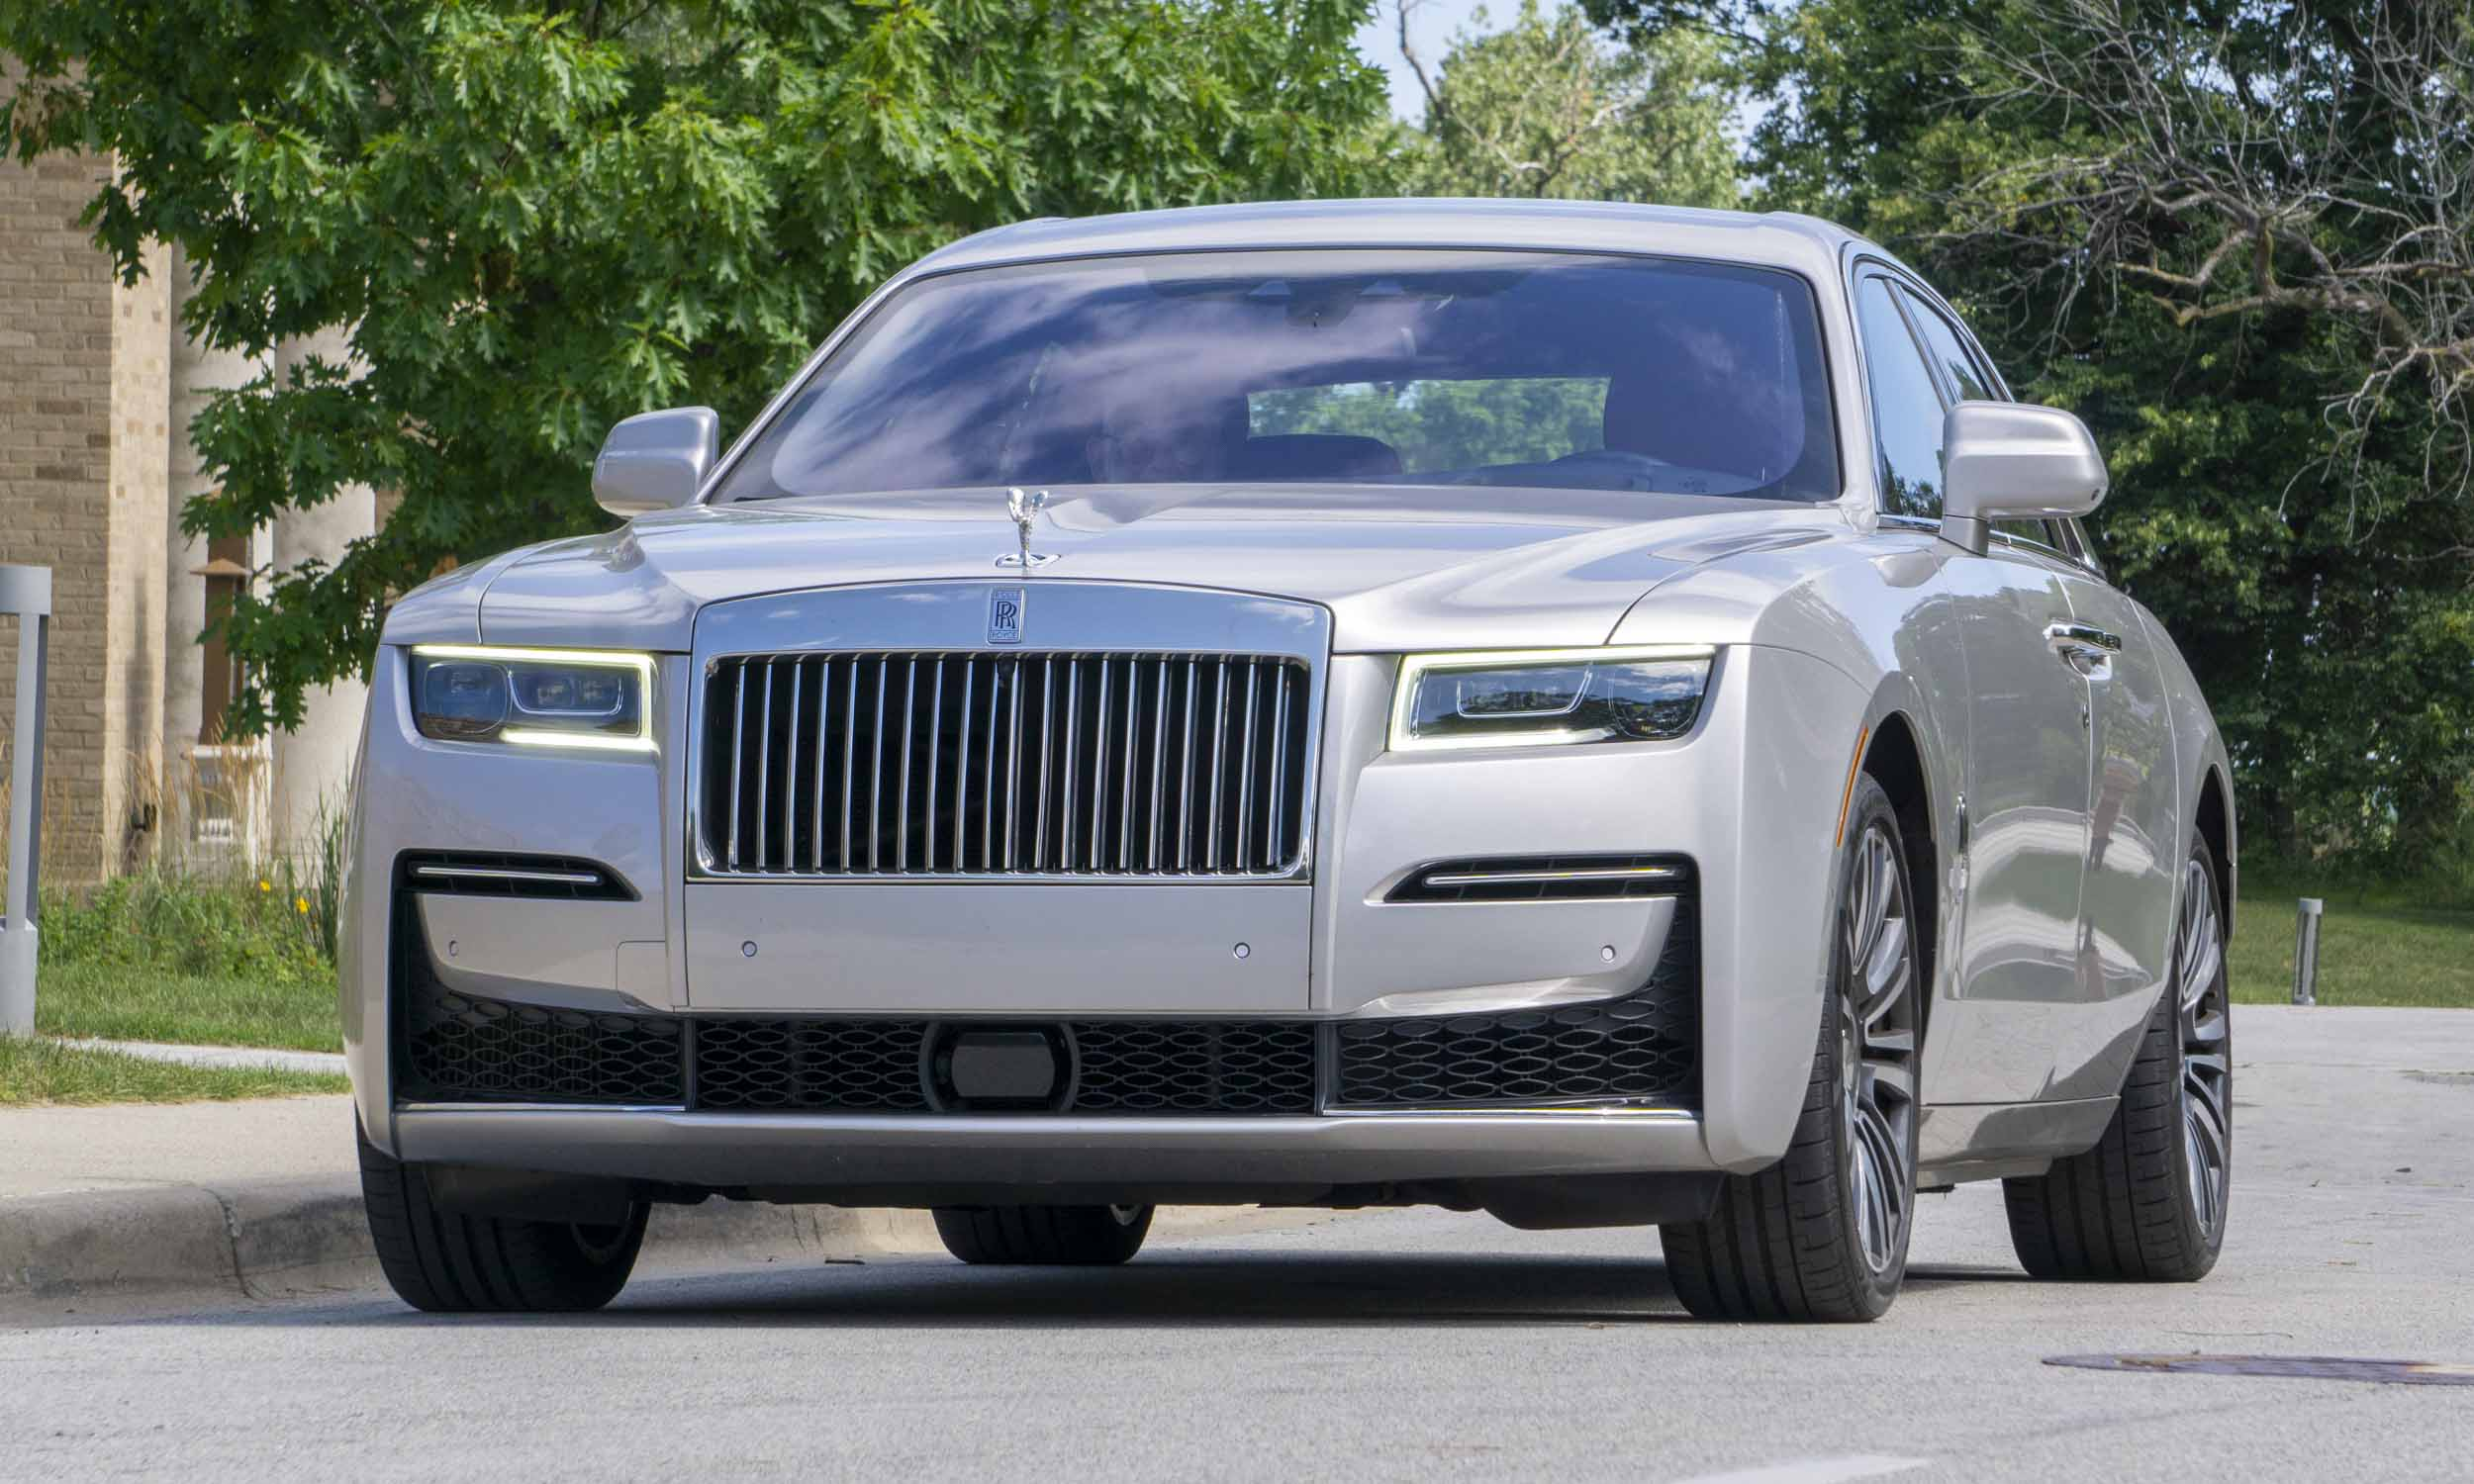 2021 Rolls-Royce Ghost front view